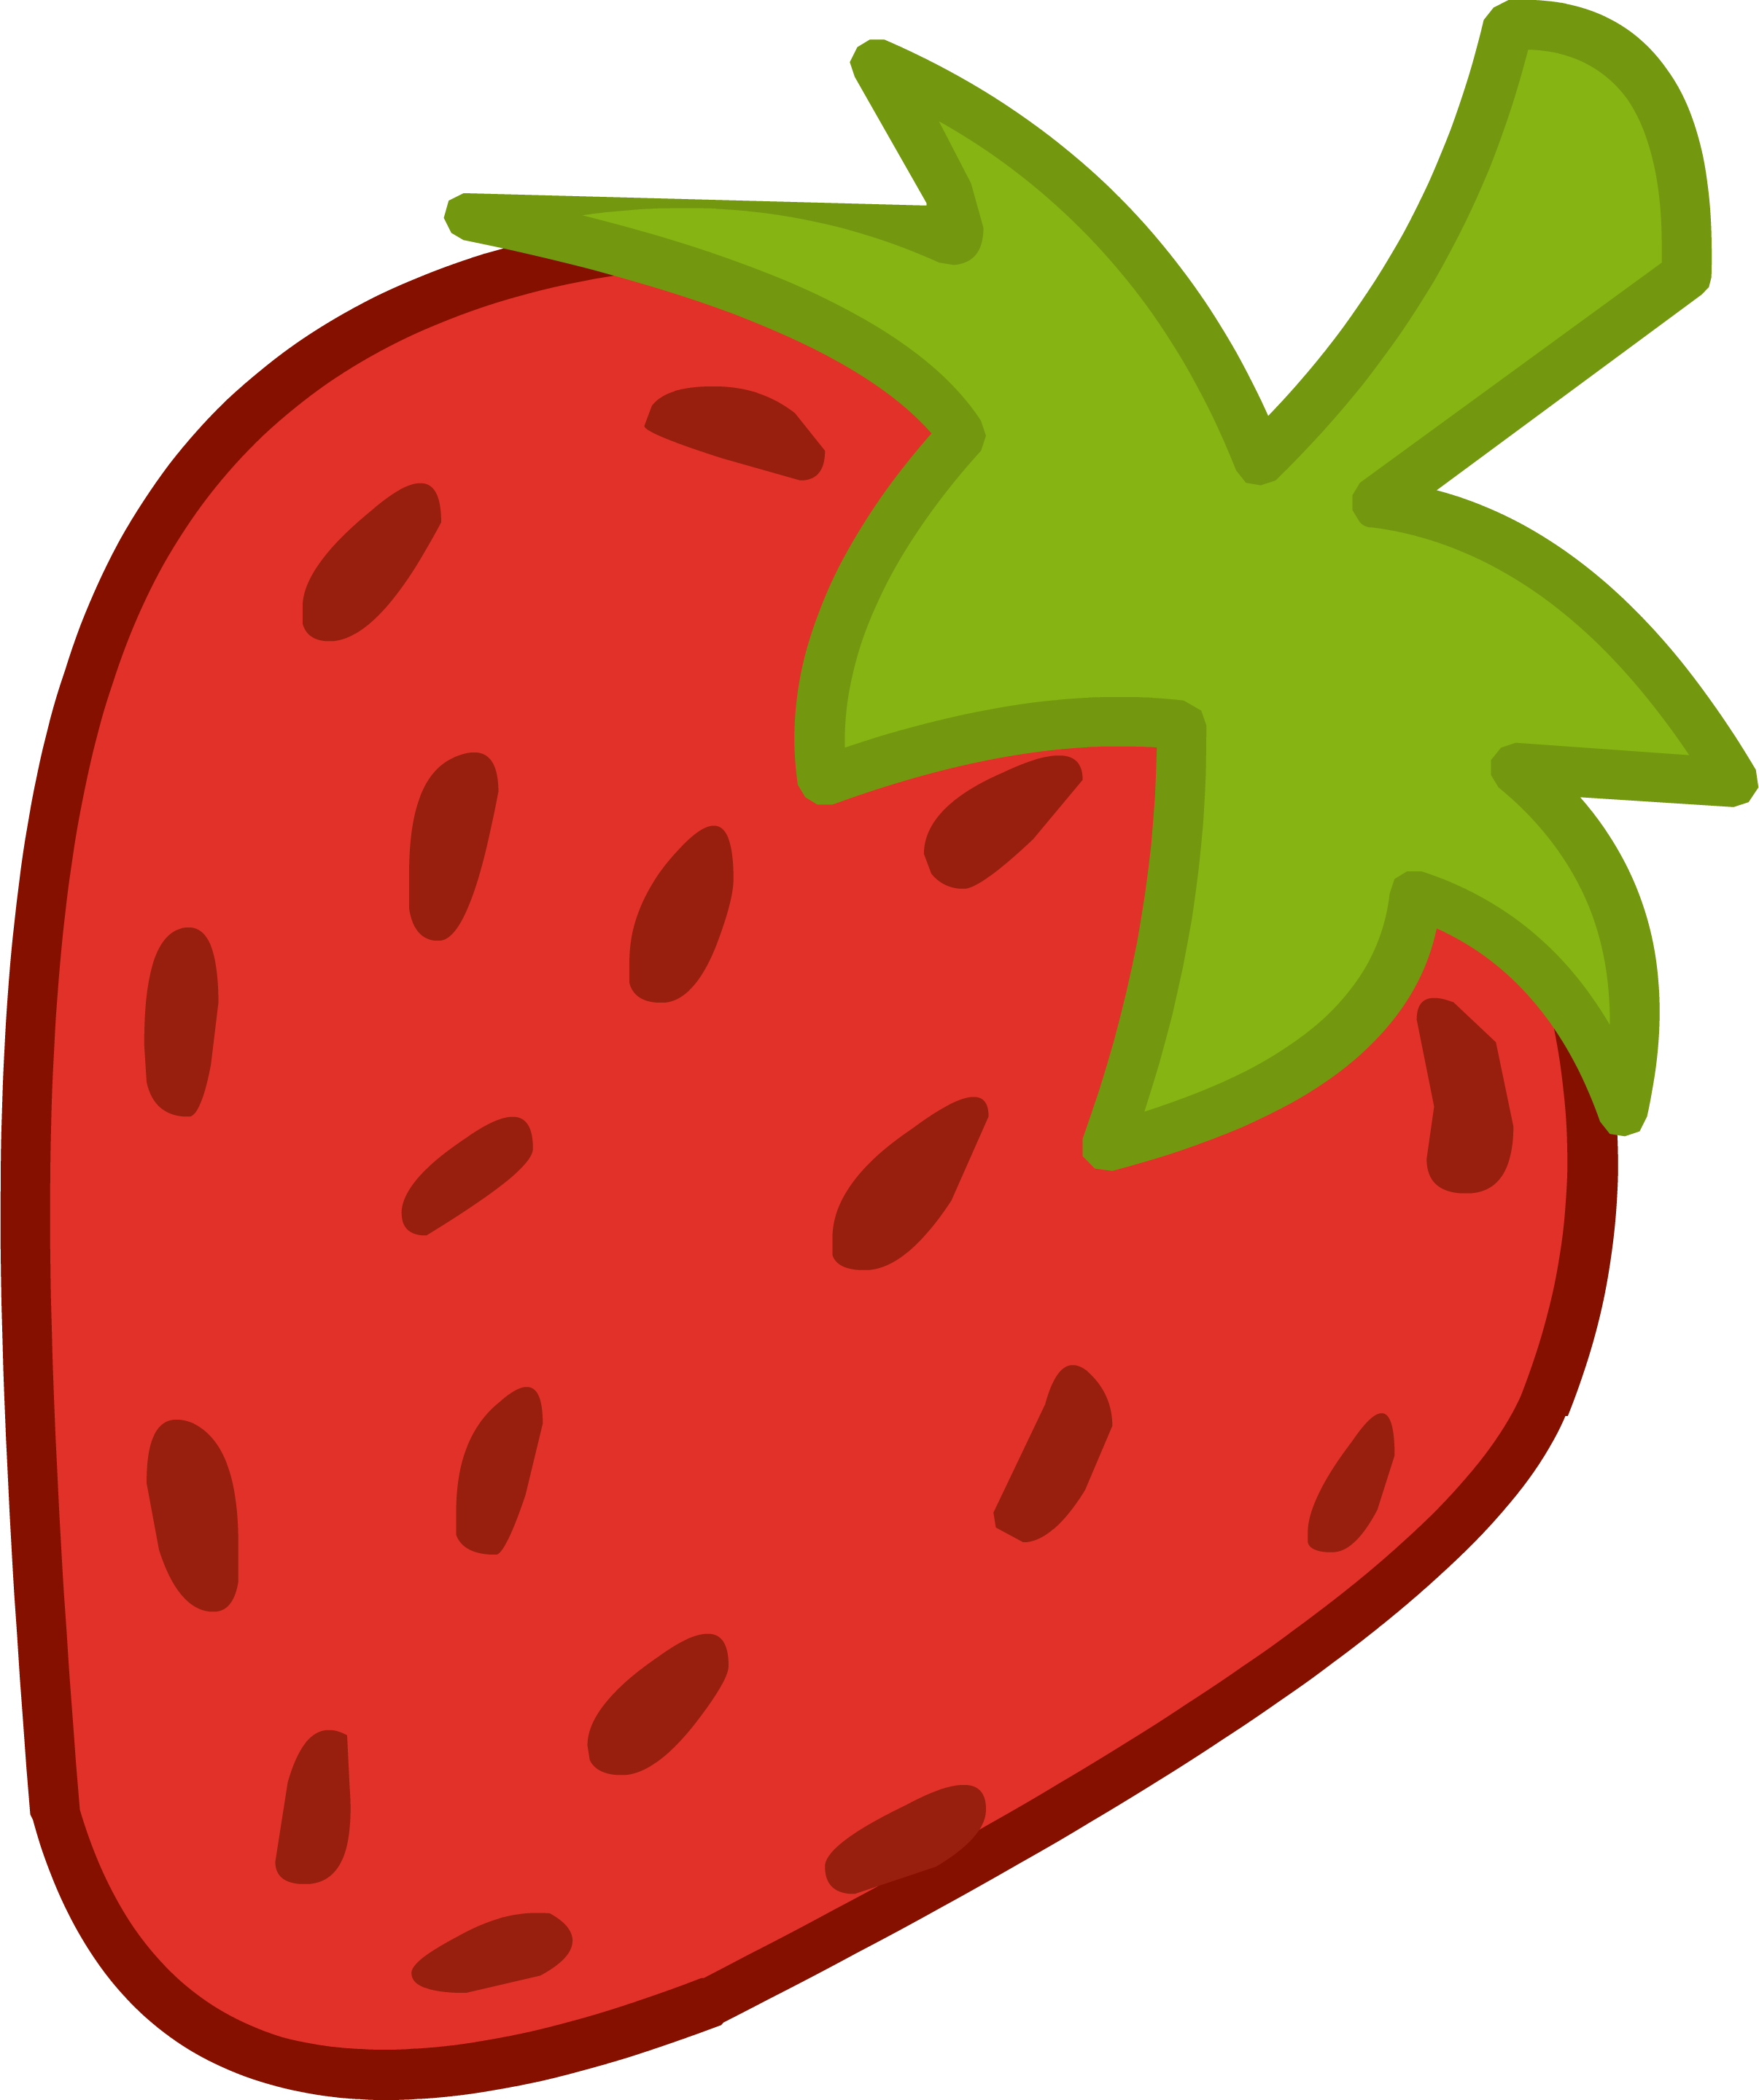 Strawberry heart clipart vector black and white library strawberry-shortcake-clipart-free-clip-art-images.png 2,412×2,880 ... vector black and white library